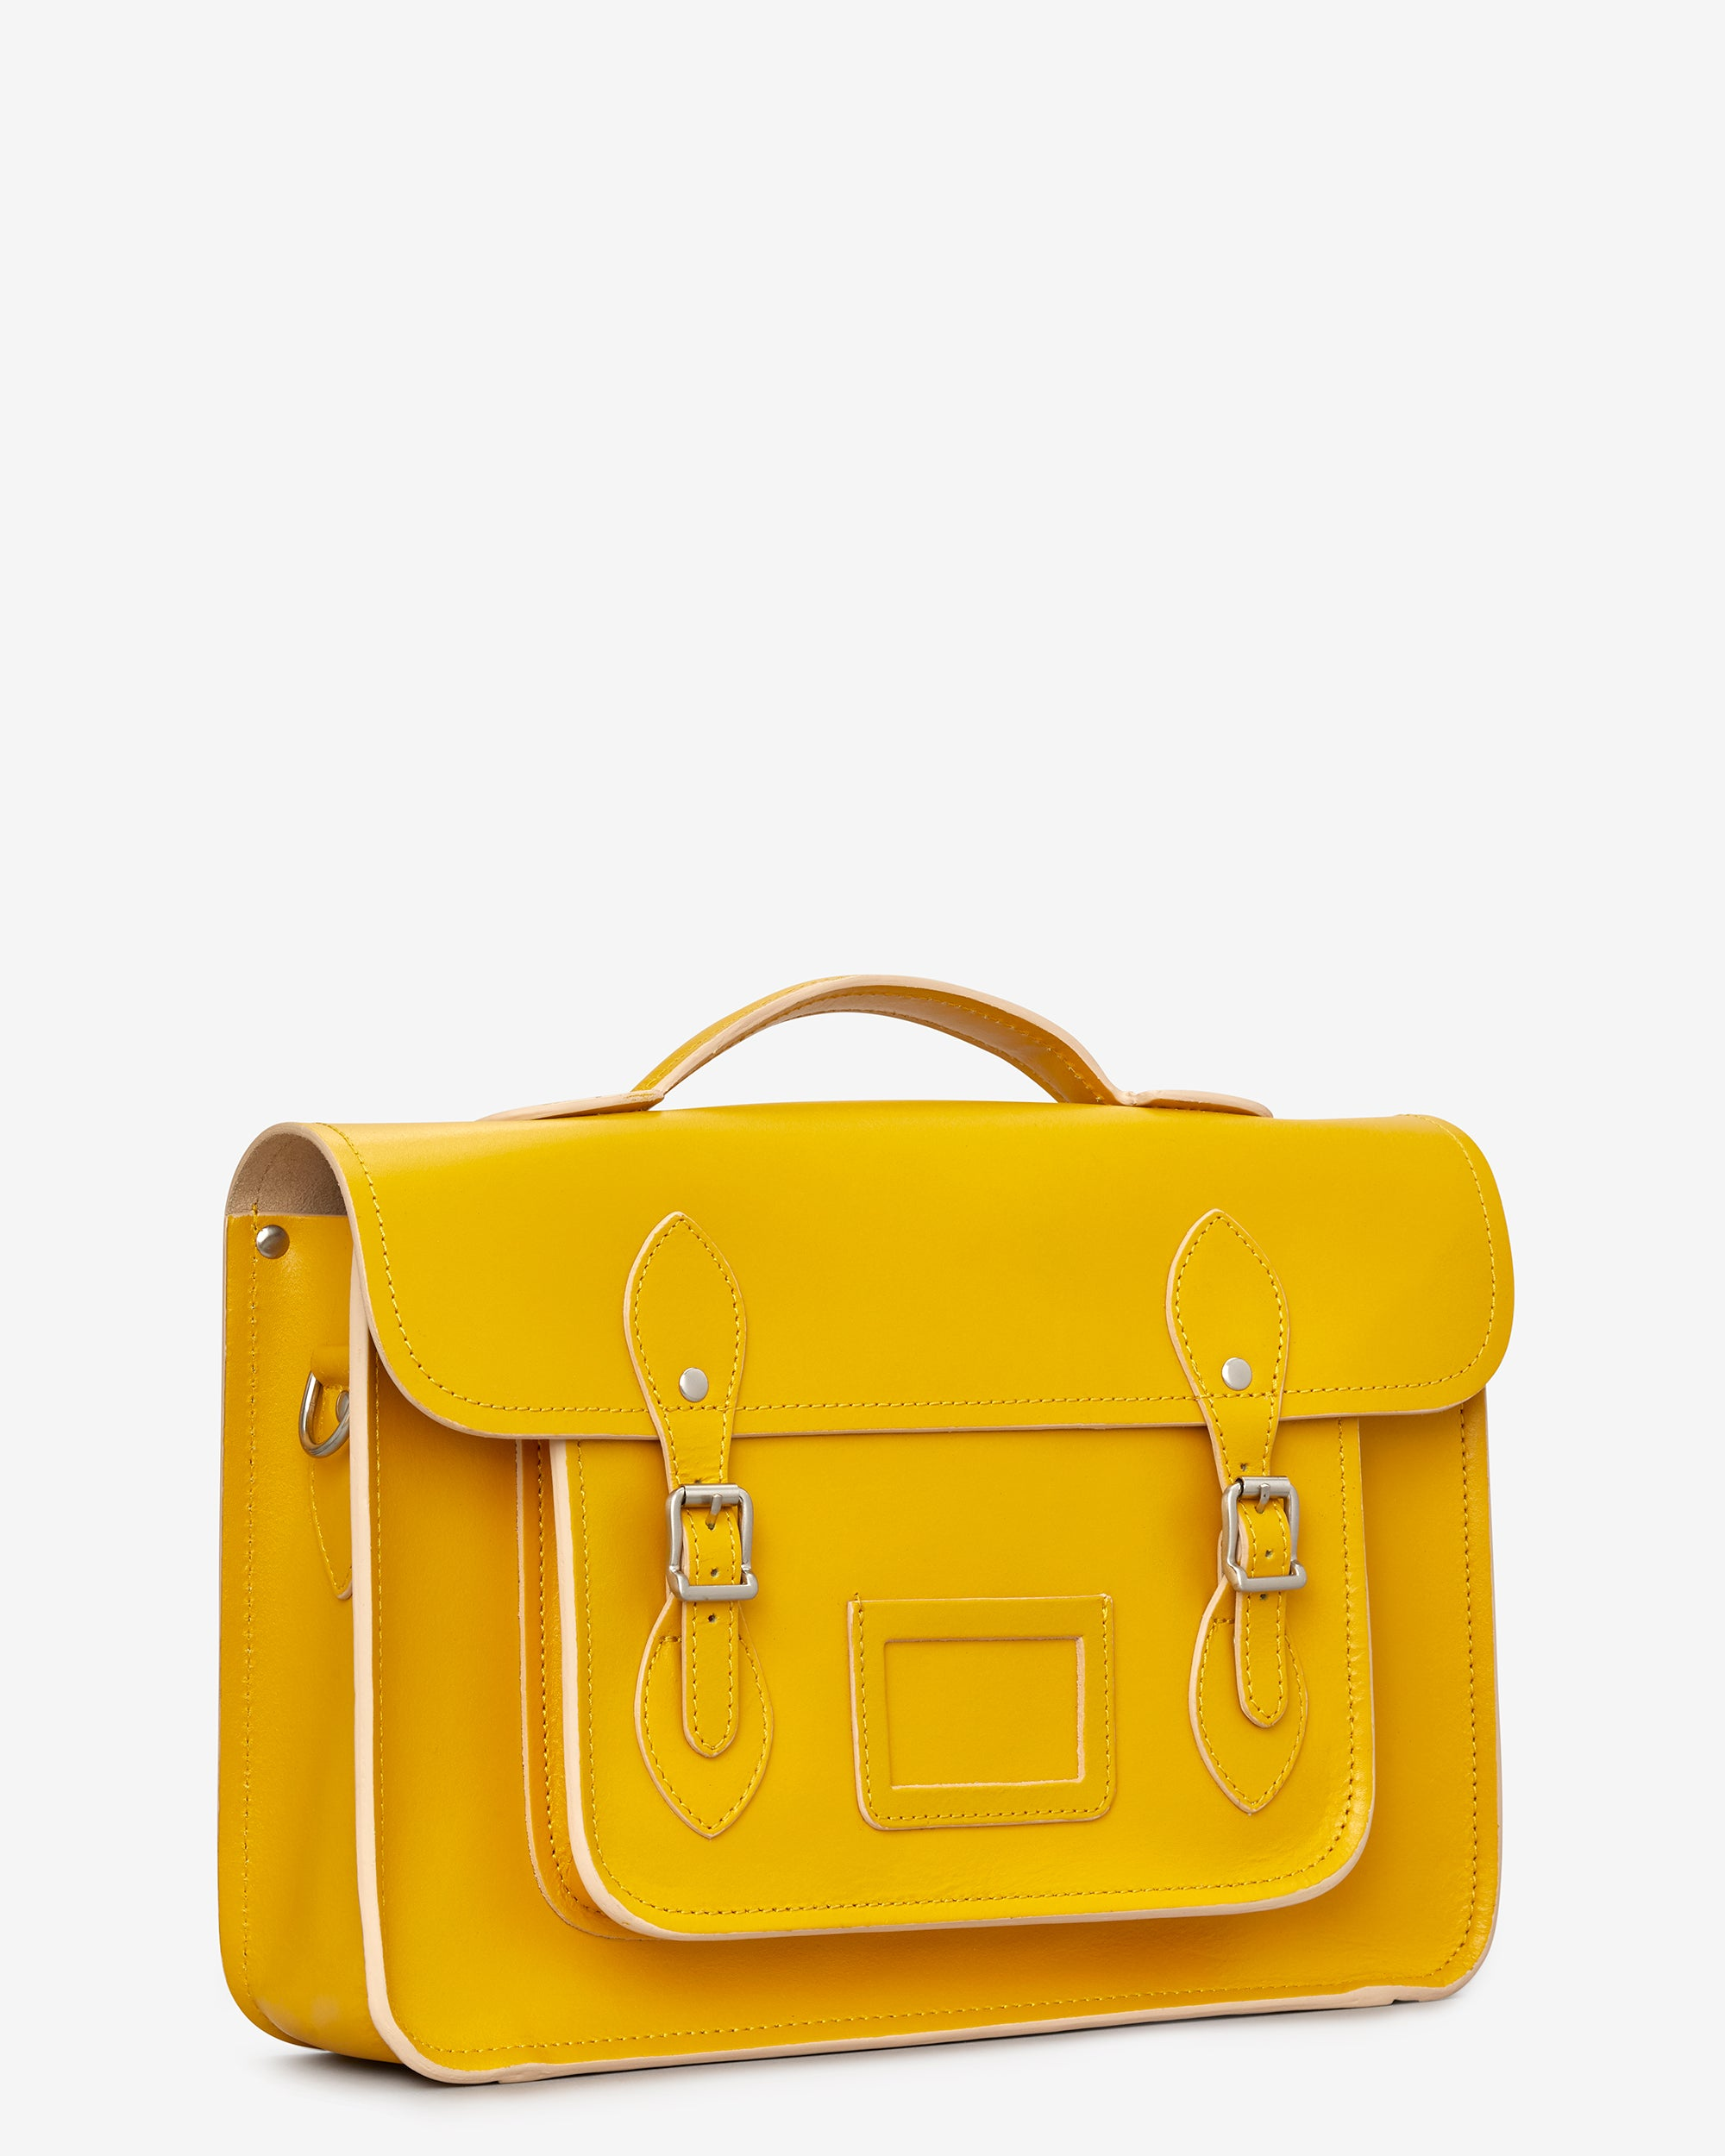 Belforte 14\' Mustard Yellow Leather Satchel